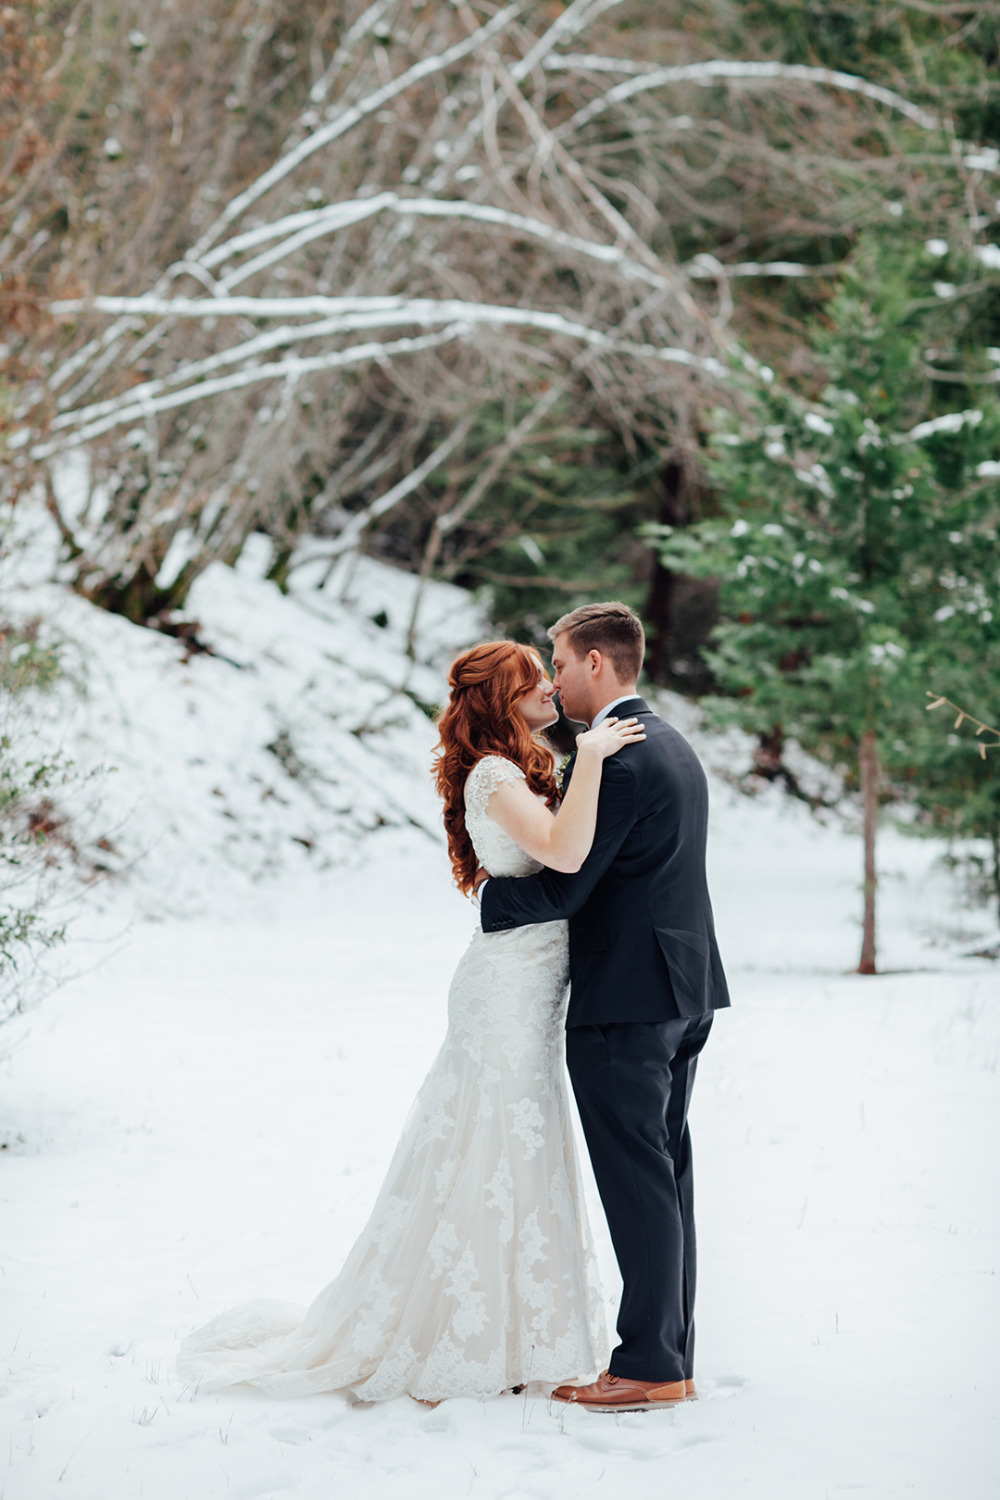 fun in the snow on your wedding day